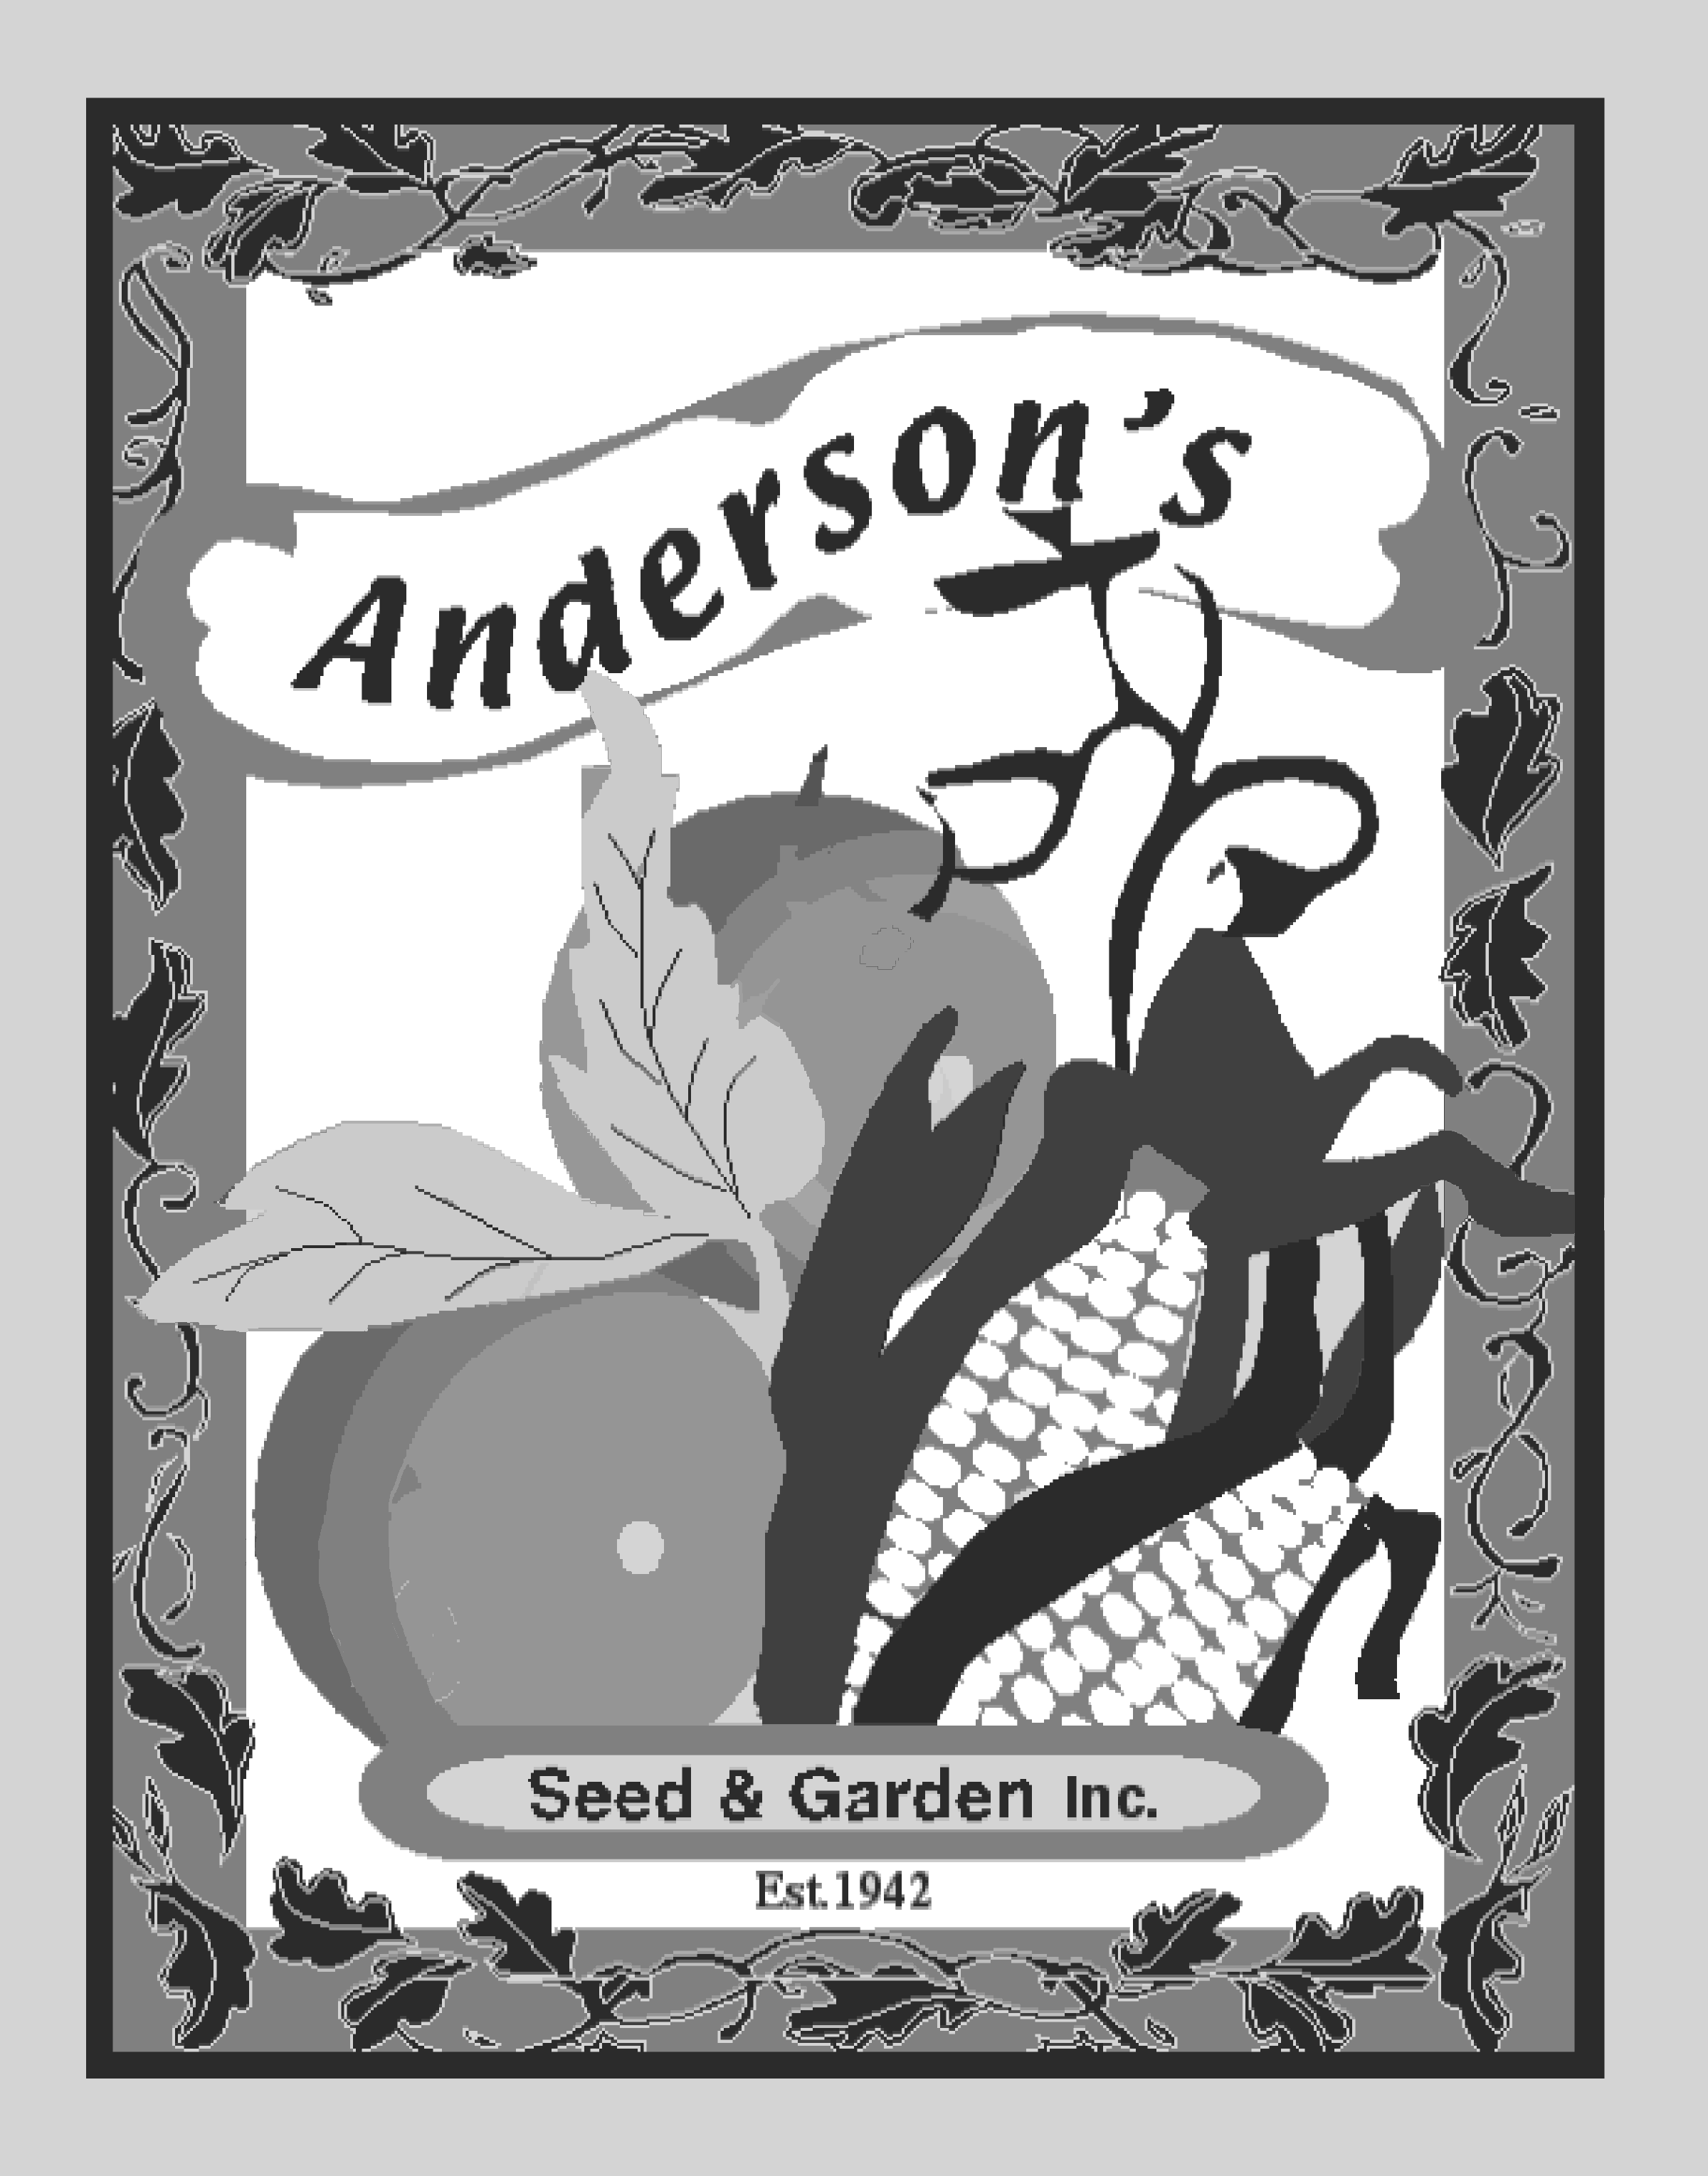 Spacemaster Heirloom Bush Cucumber Seed 1oz.